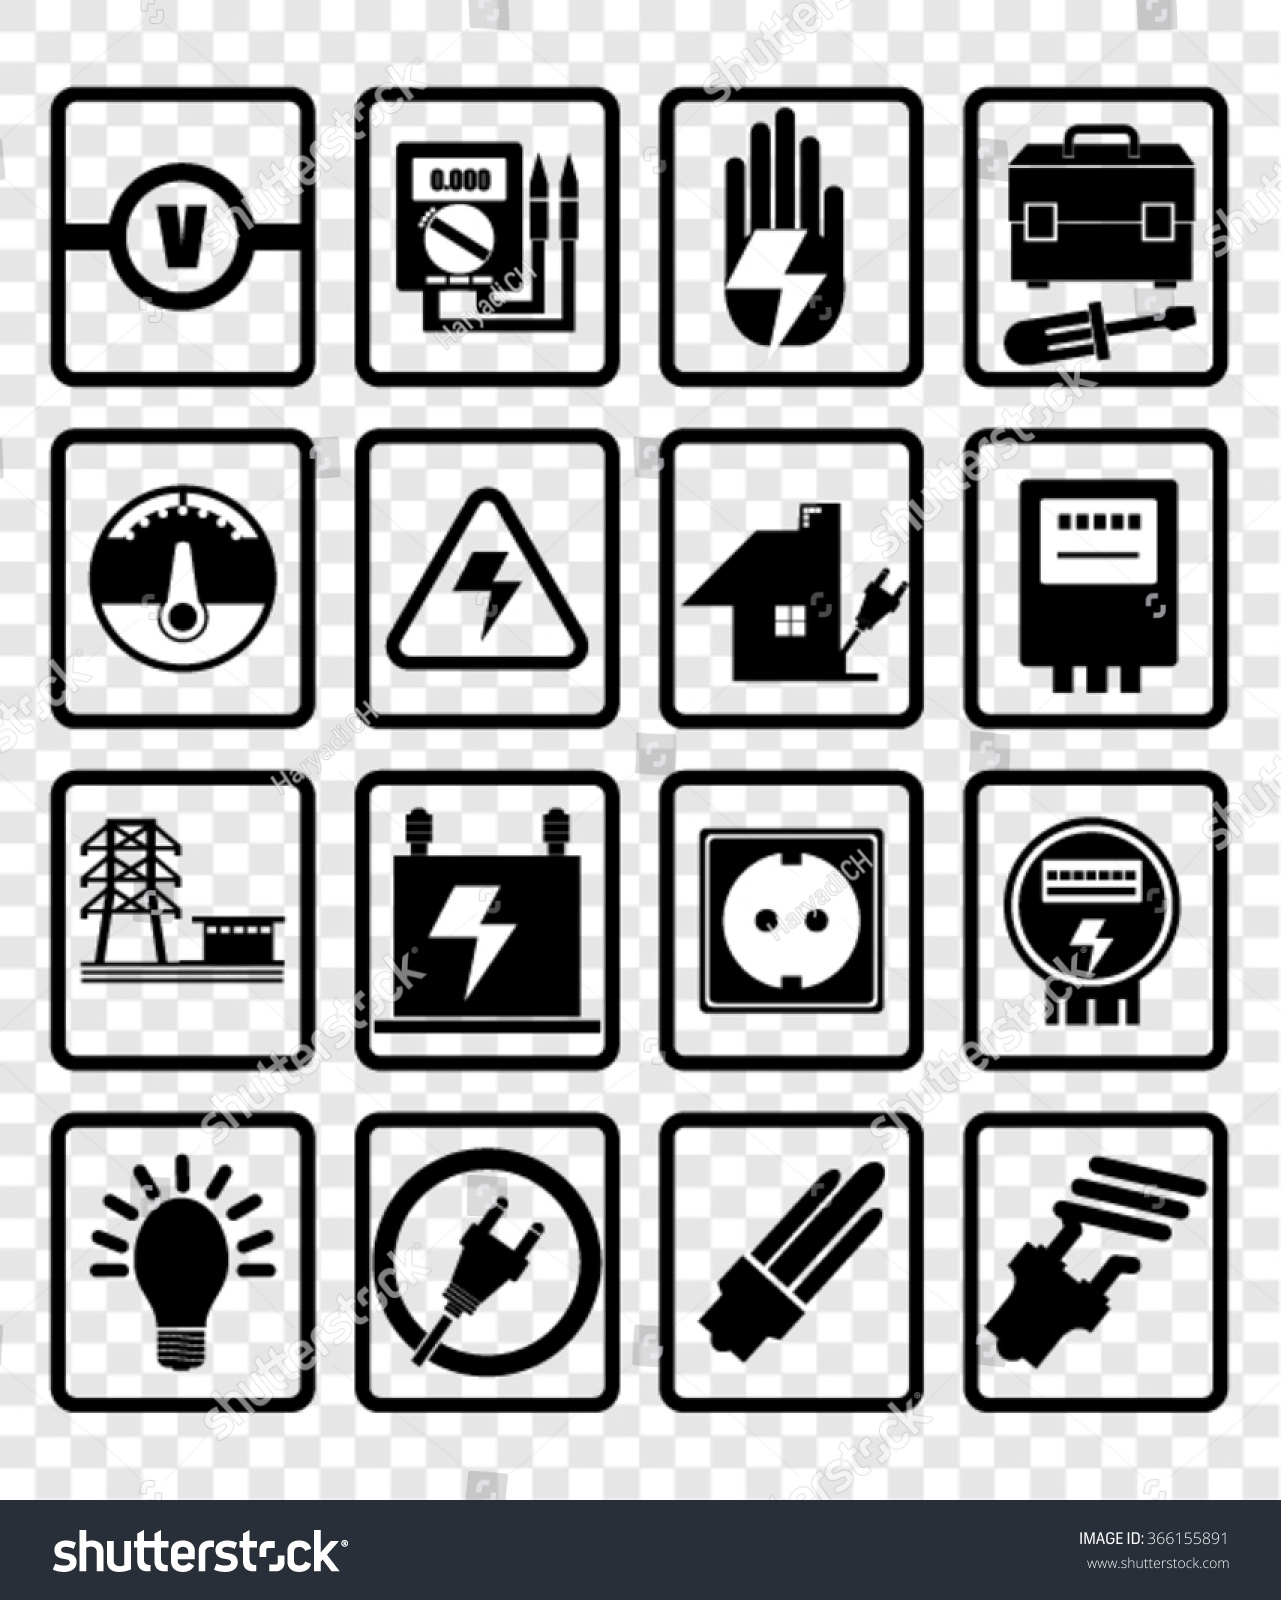 Electricity Icons Vector Stock Vector 366155891 - Shutterstock